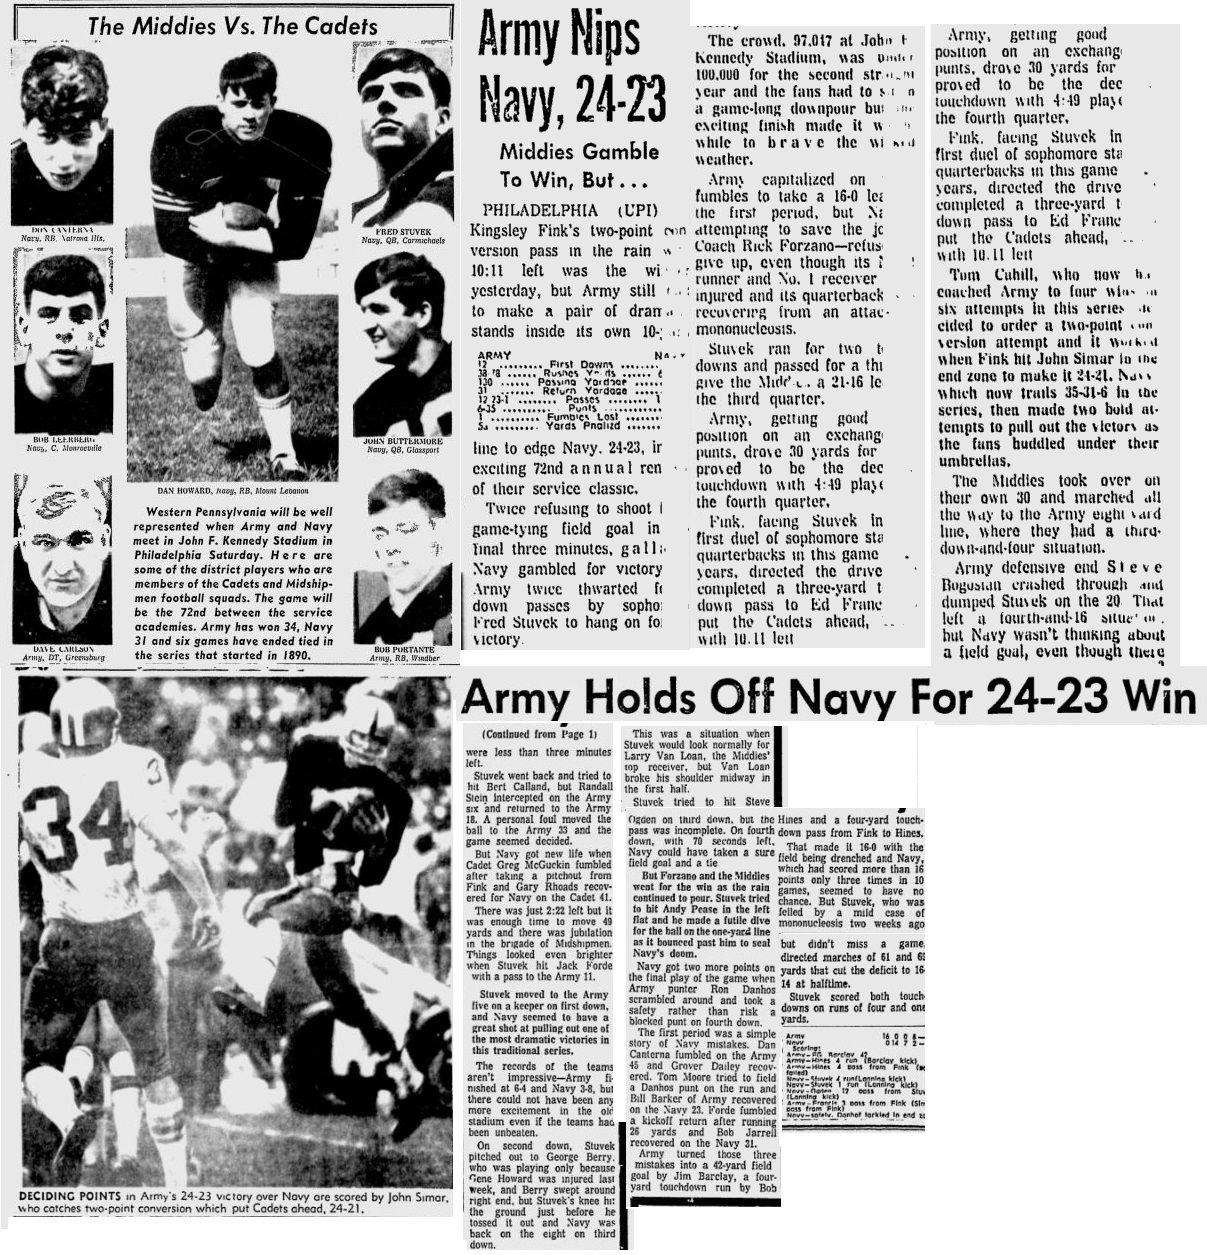 armyfb_1971_vsnavy_pittsburghpress_nov21-281971